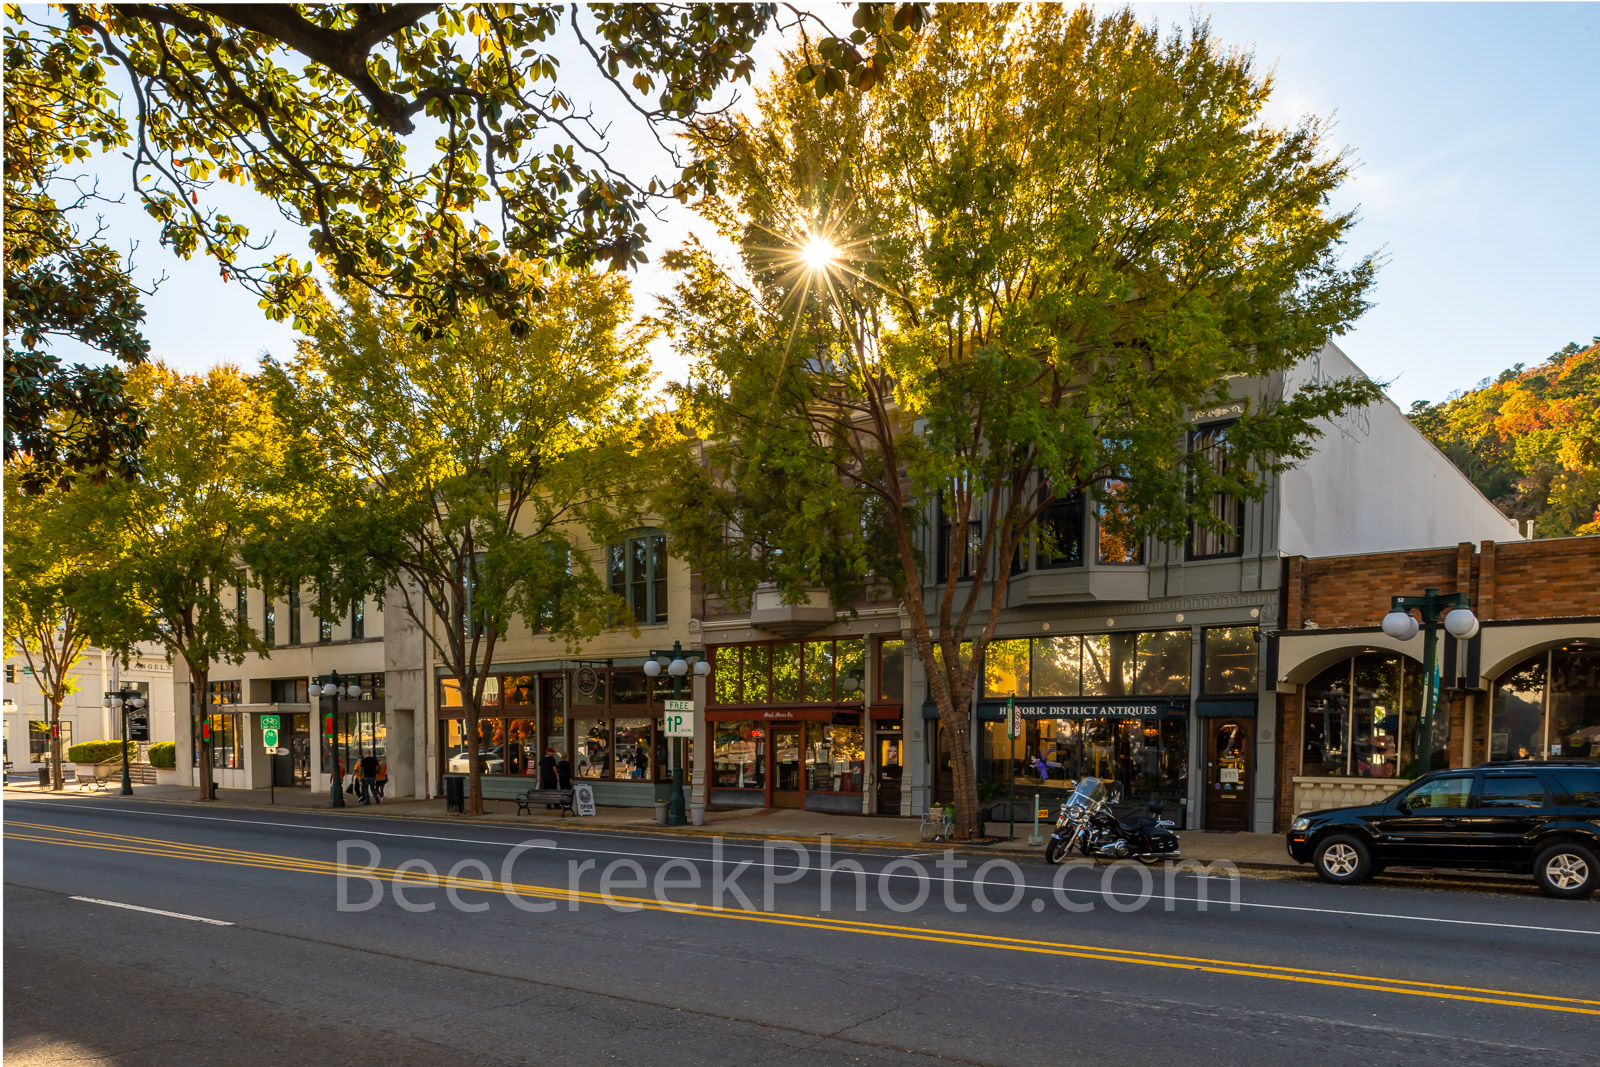 Hot Spring, Arkansas, central avenue, historic, architectural, downtown, town, city, street, Hot Springs National Park, Ouachita Mountains, springs, thermal,, photo